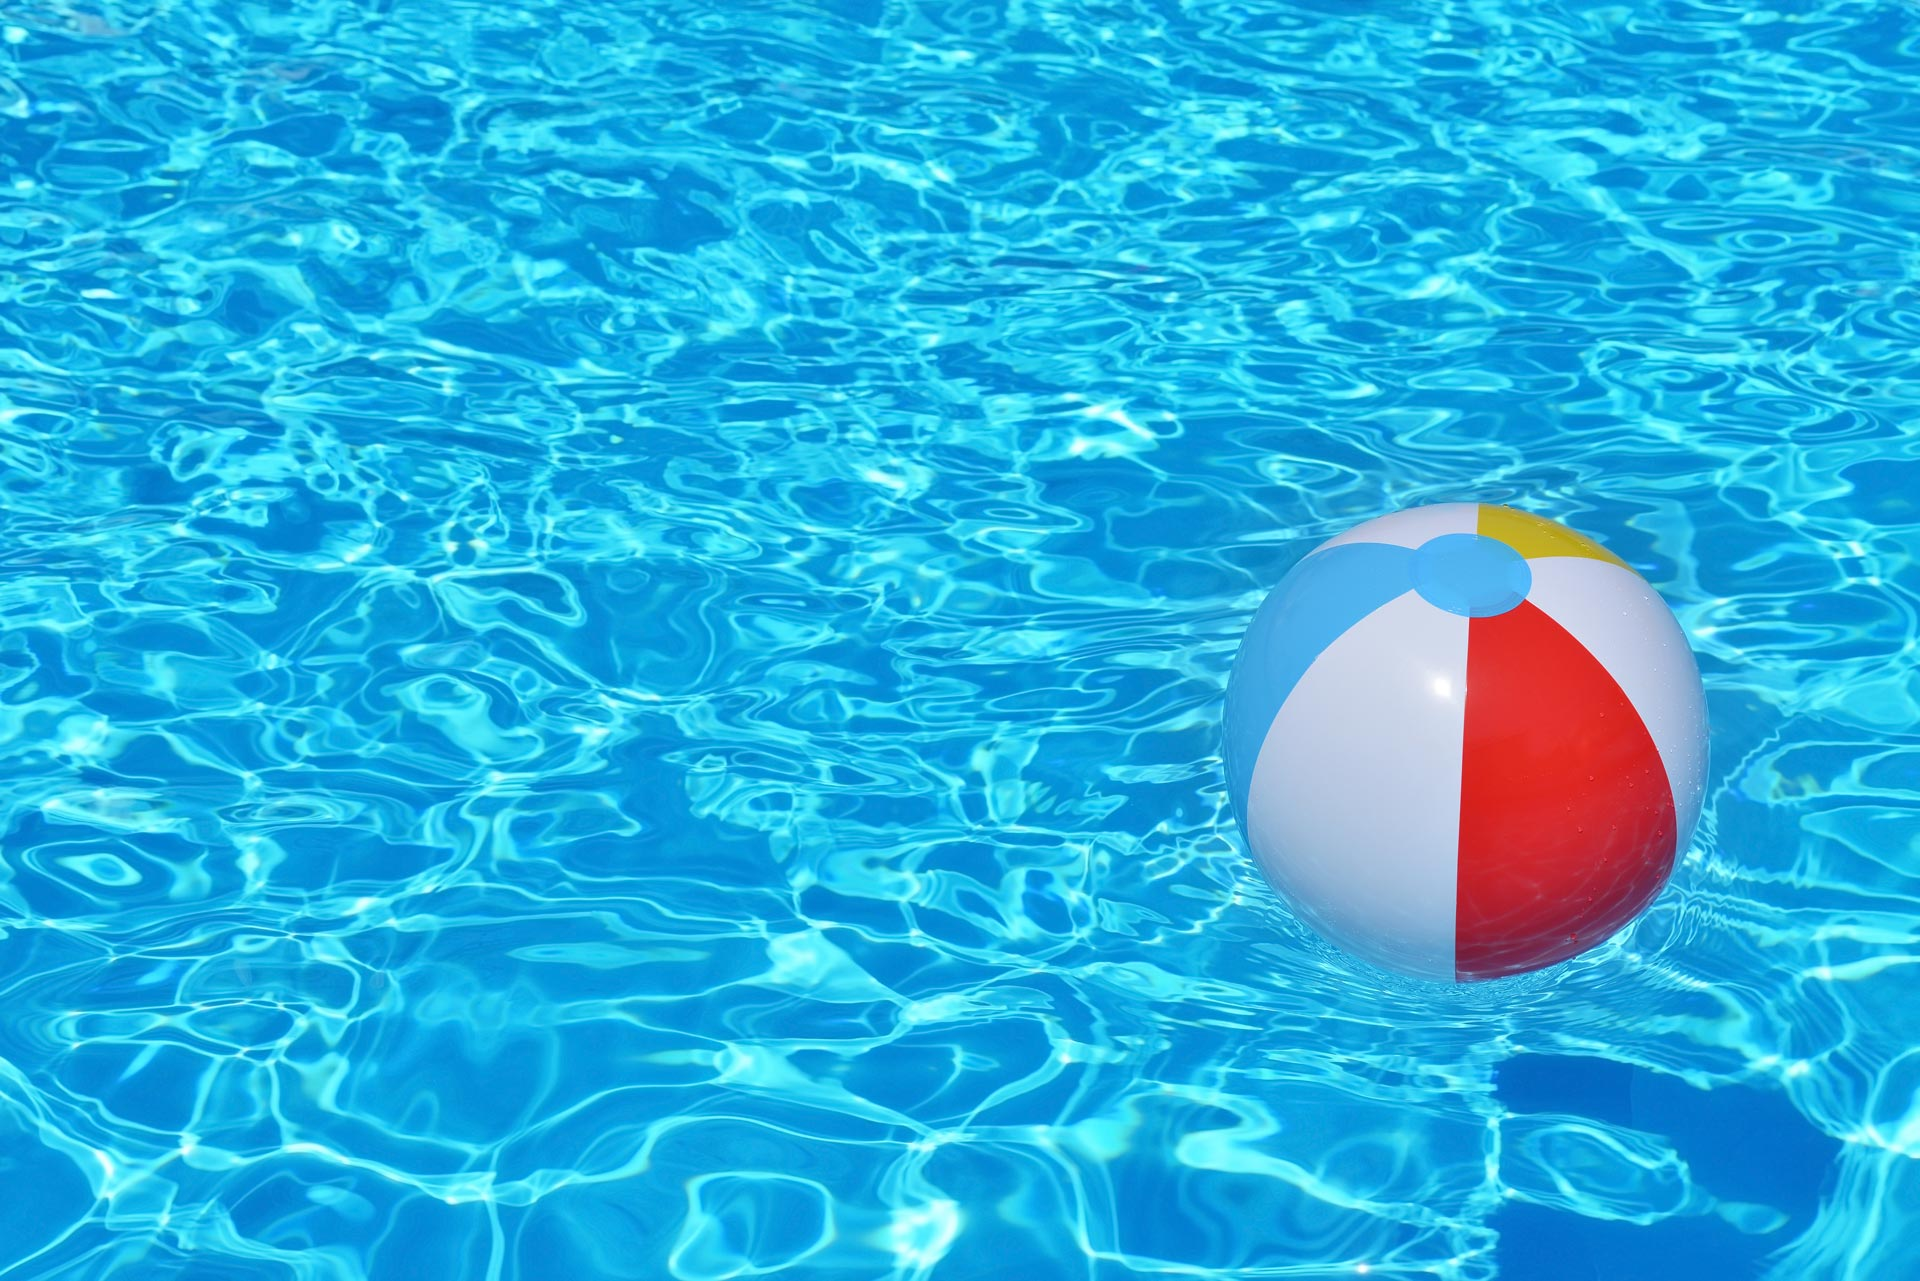 Red, white, yellow and blue beach ball floating in crystal clear blue water